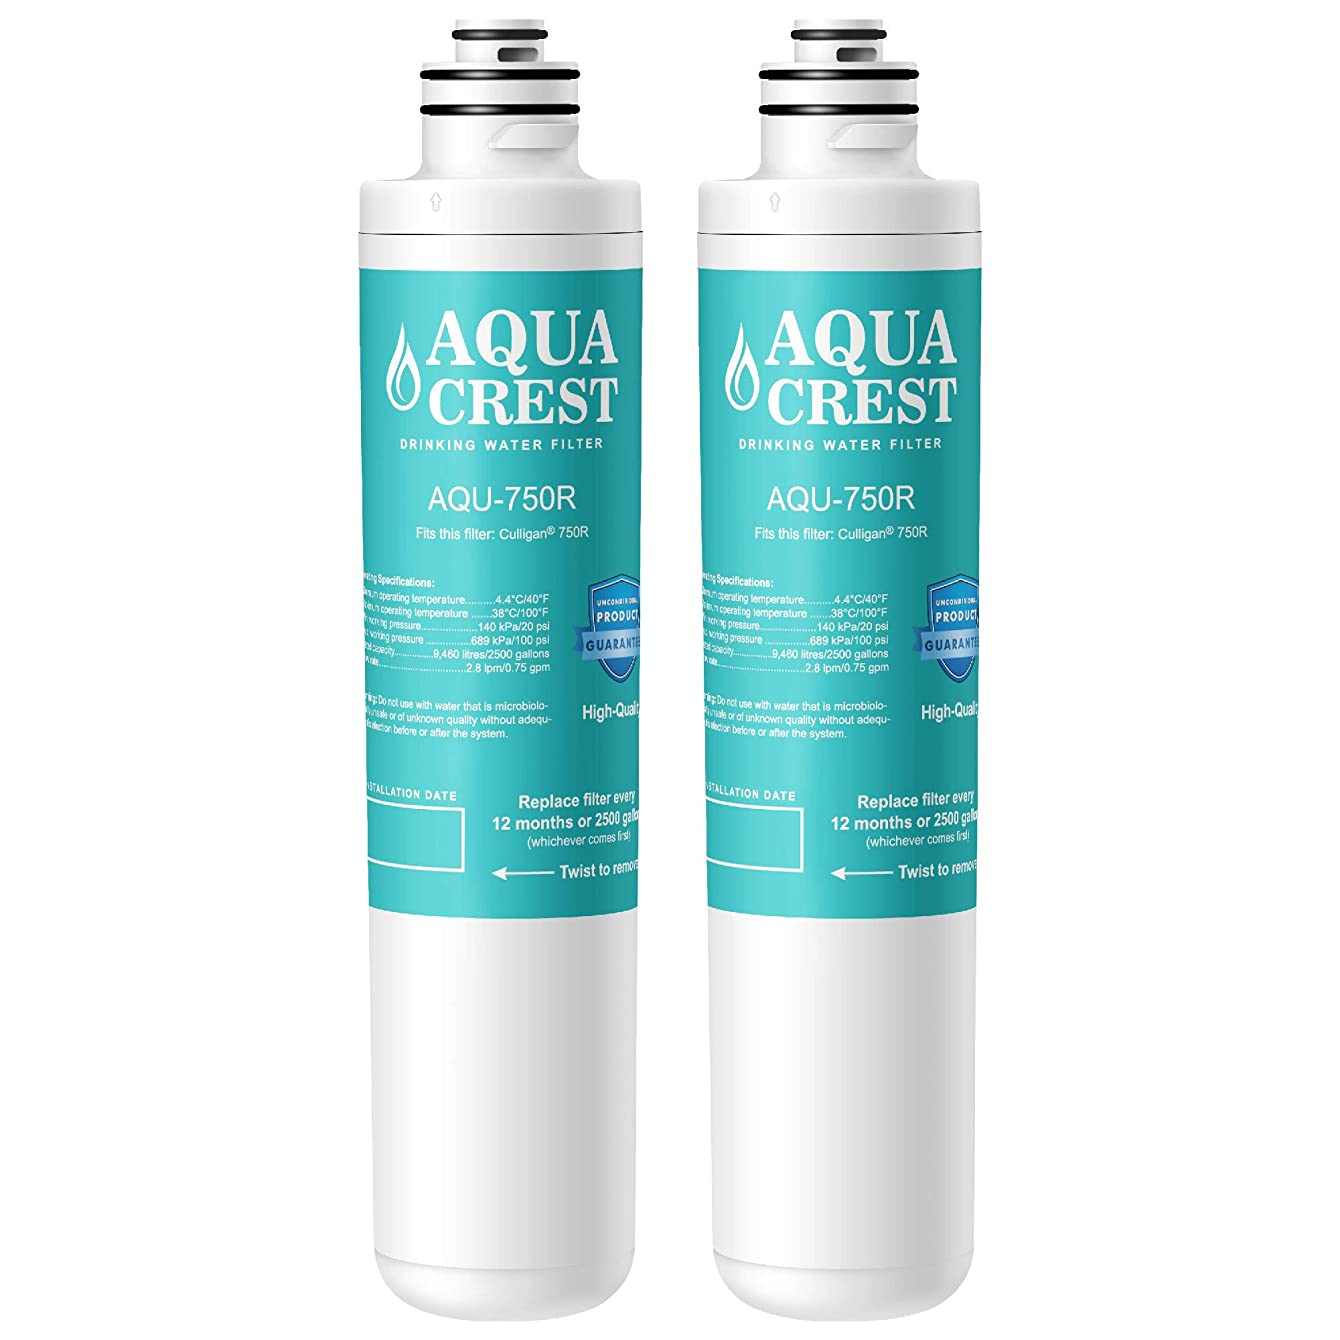 AQUACREST 750R Drinking Water Filter, Compatible with Culligan 750R Level 1 (Pack of 2)